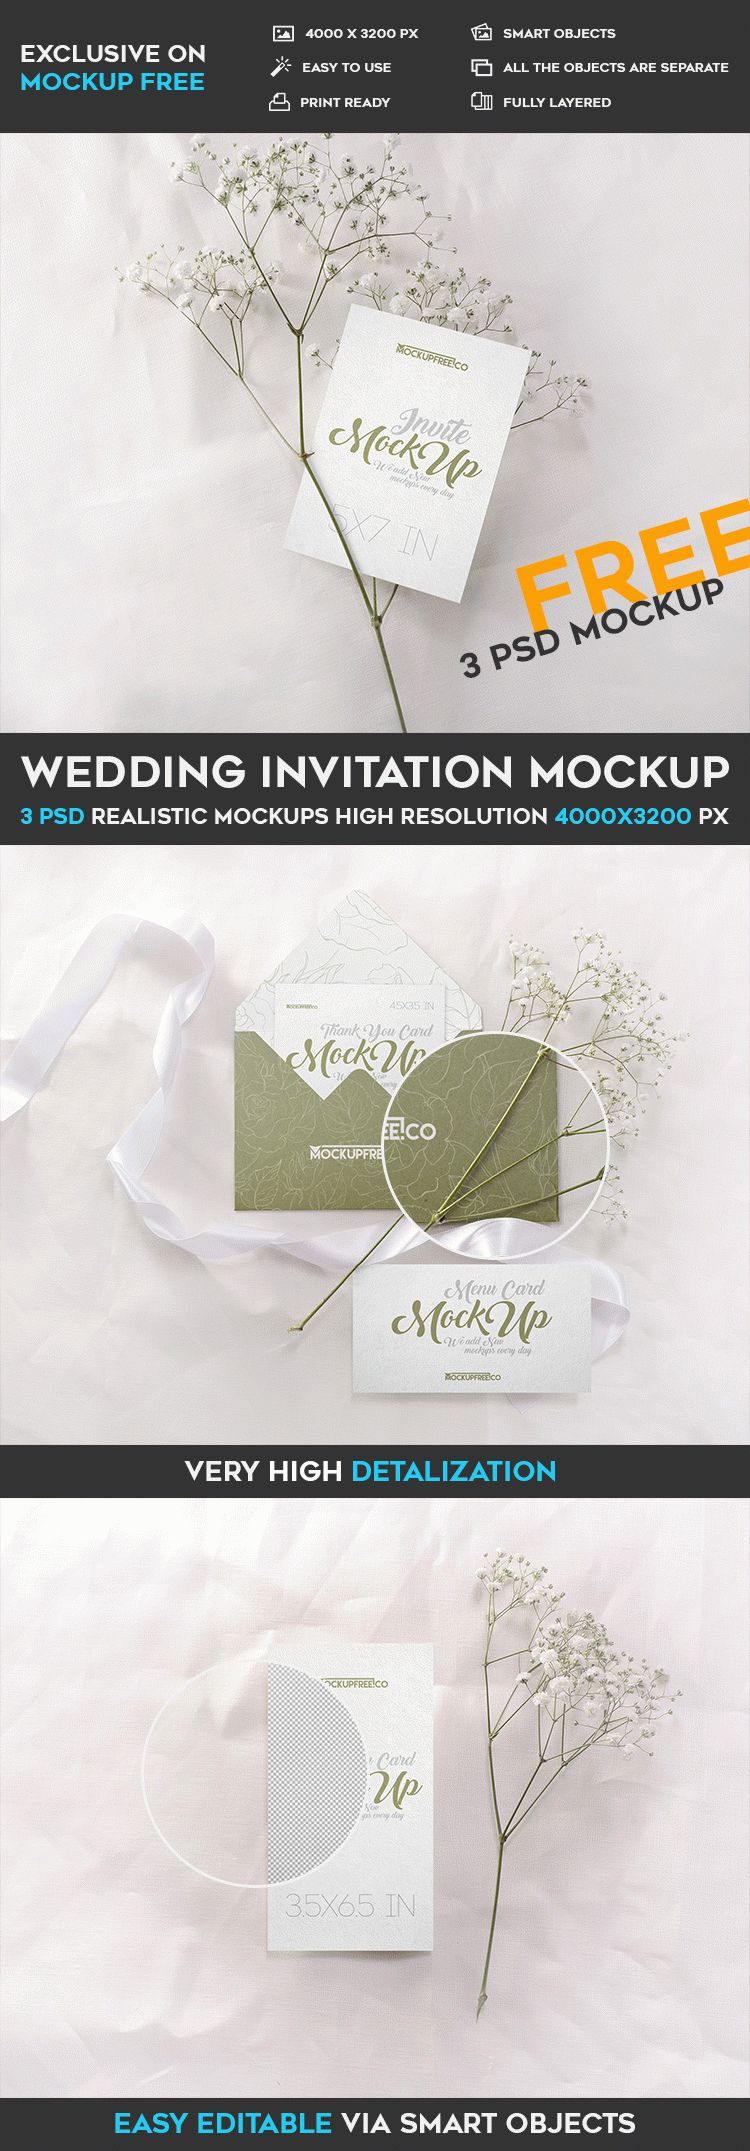 Wedding invitation 3 free psd mockups free psd templates it was created exclusively for our website the mock up is fully layered and well organized you are free to download this psd mockup template and modify it stopboris Choice Image